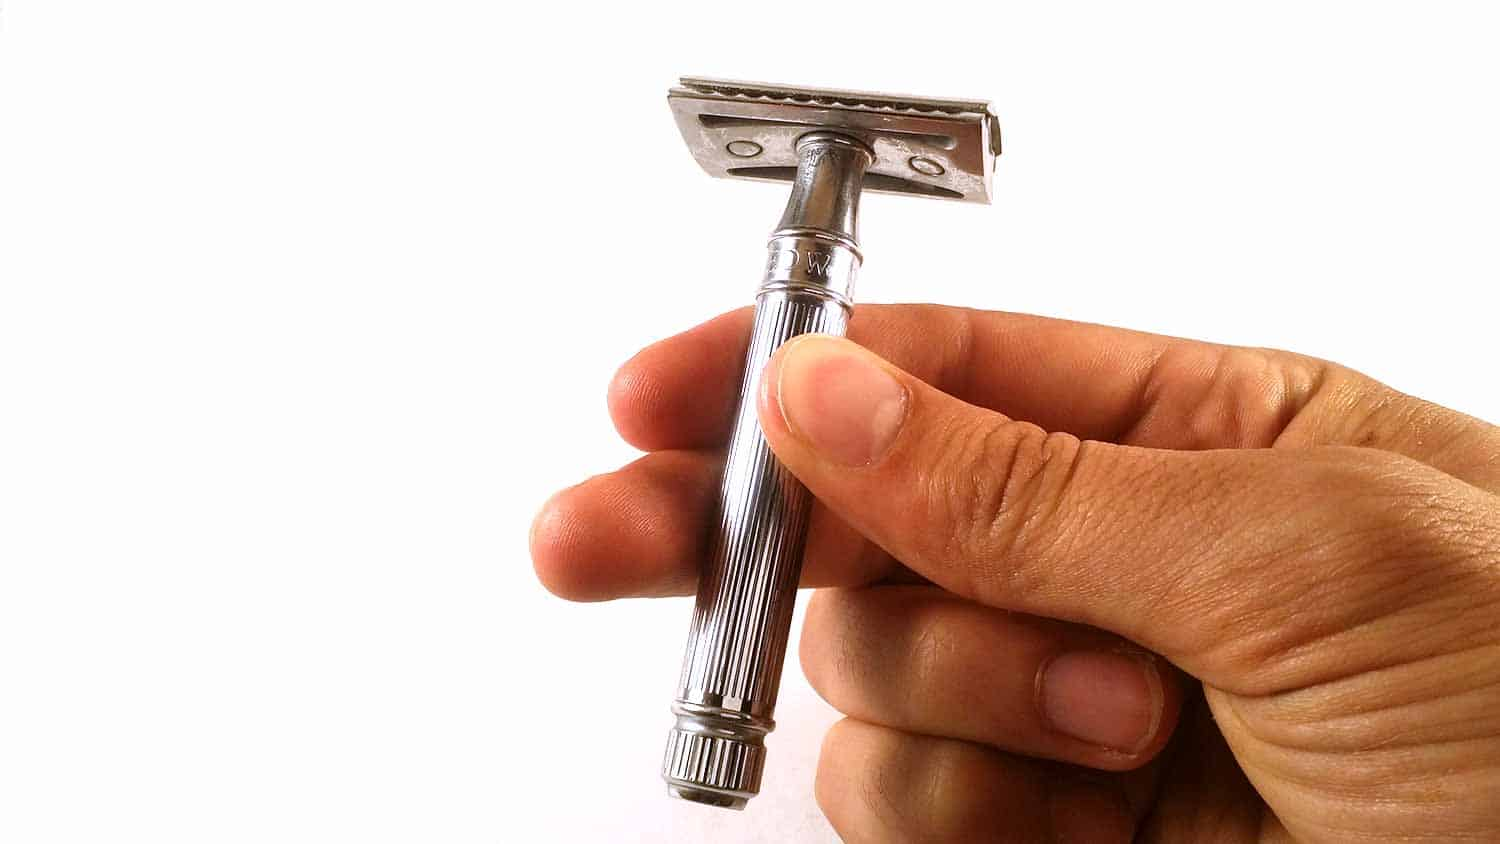 How to hold a safety razor –  Let's talk about the methods